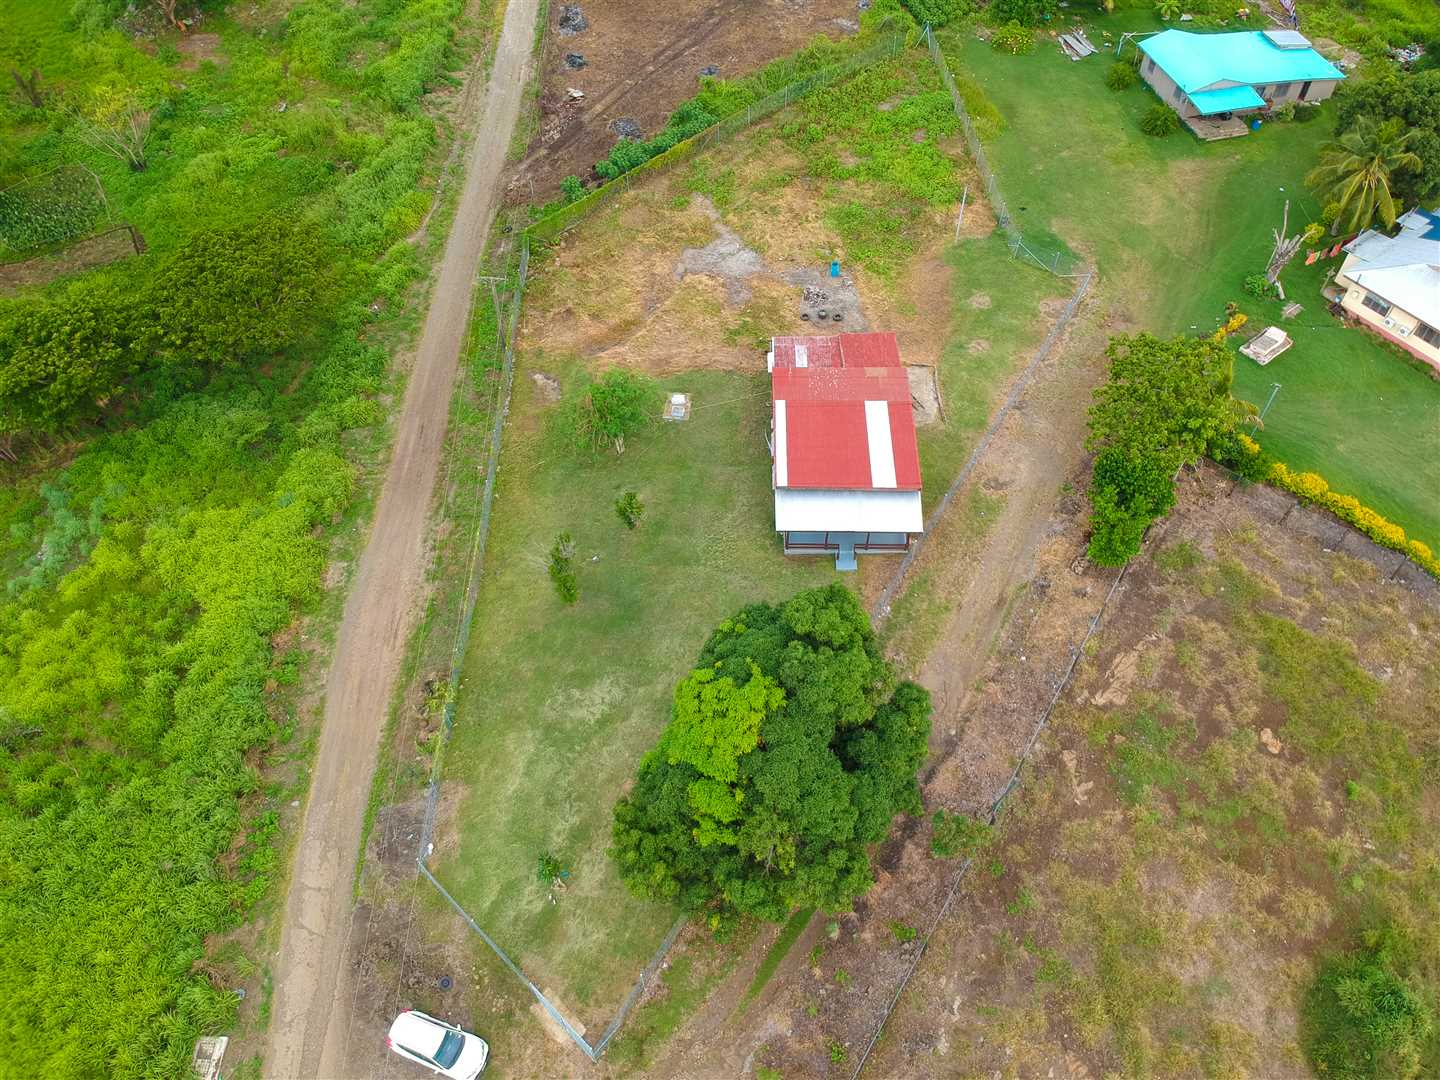 The fence line is defined in this birds eye view of the property.